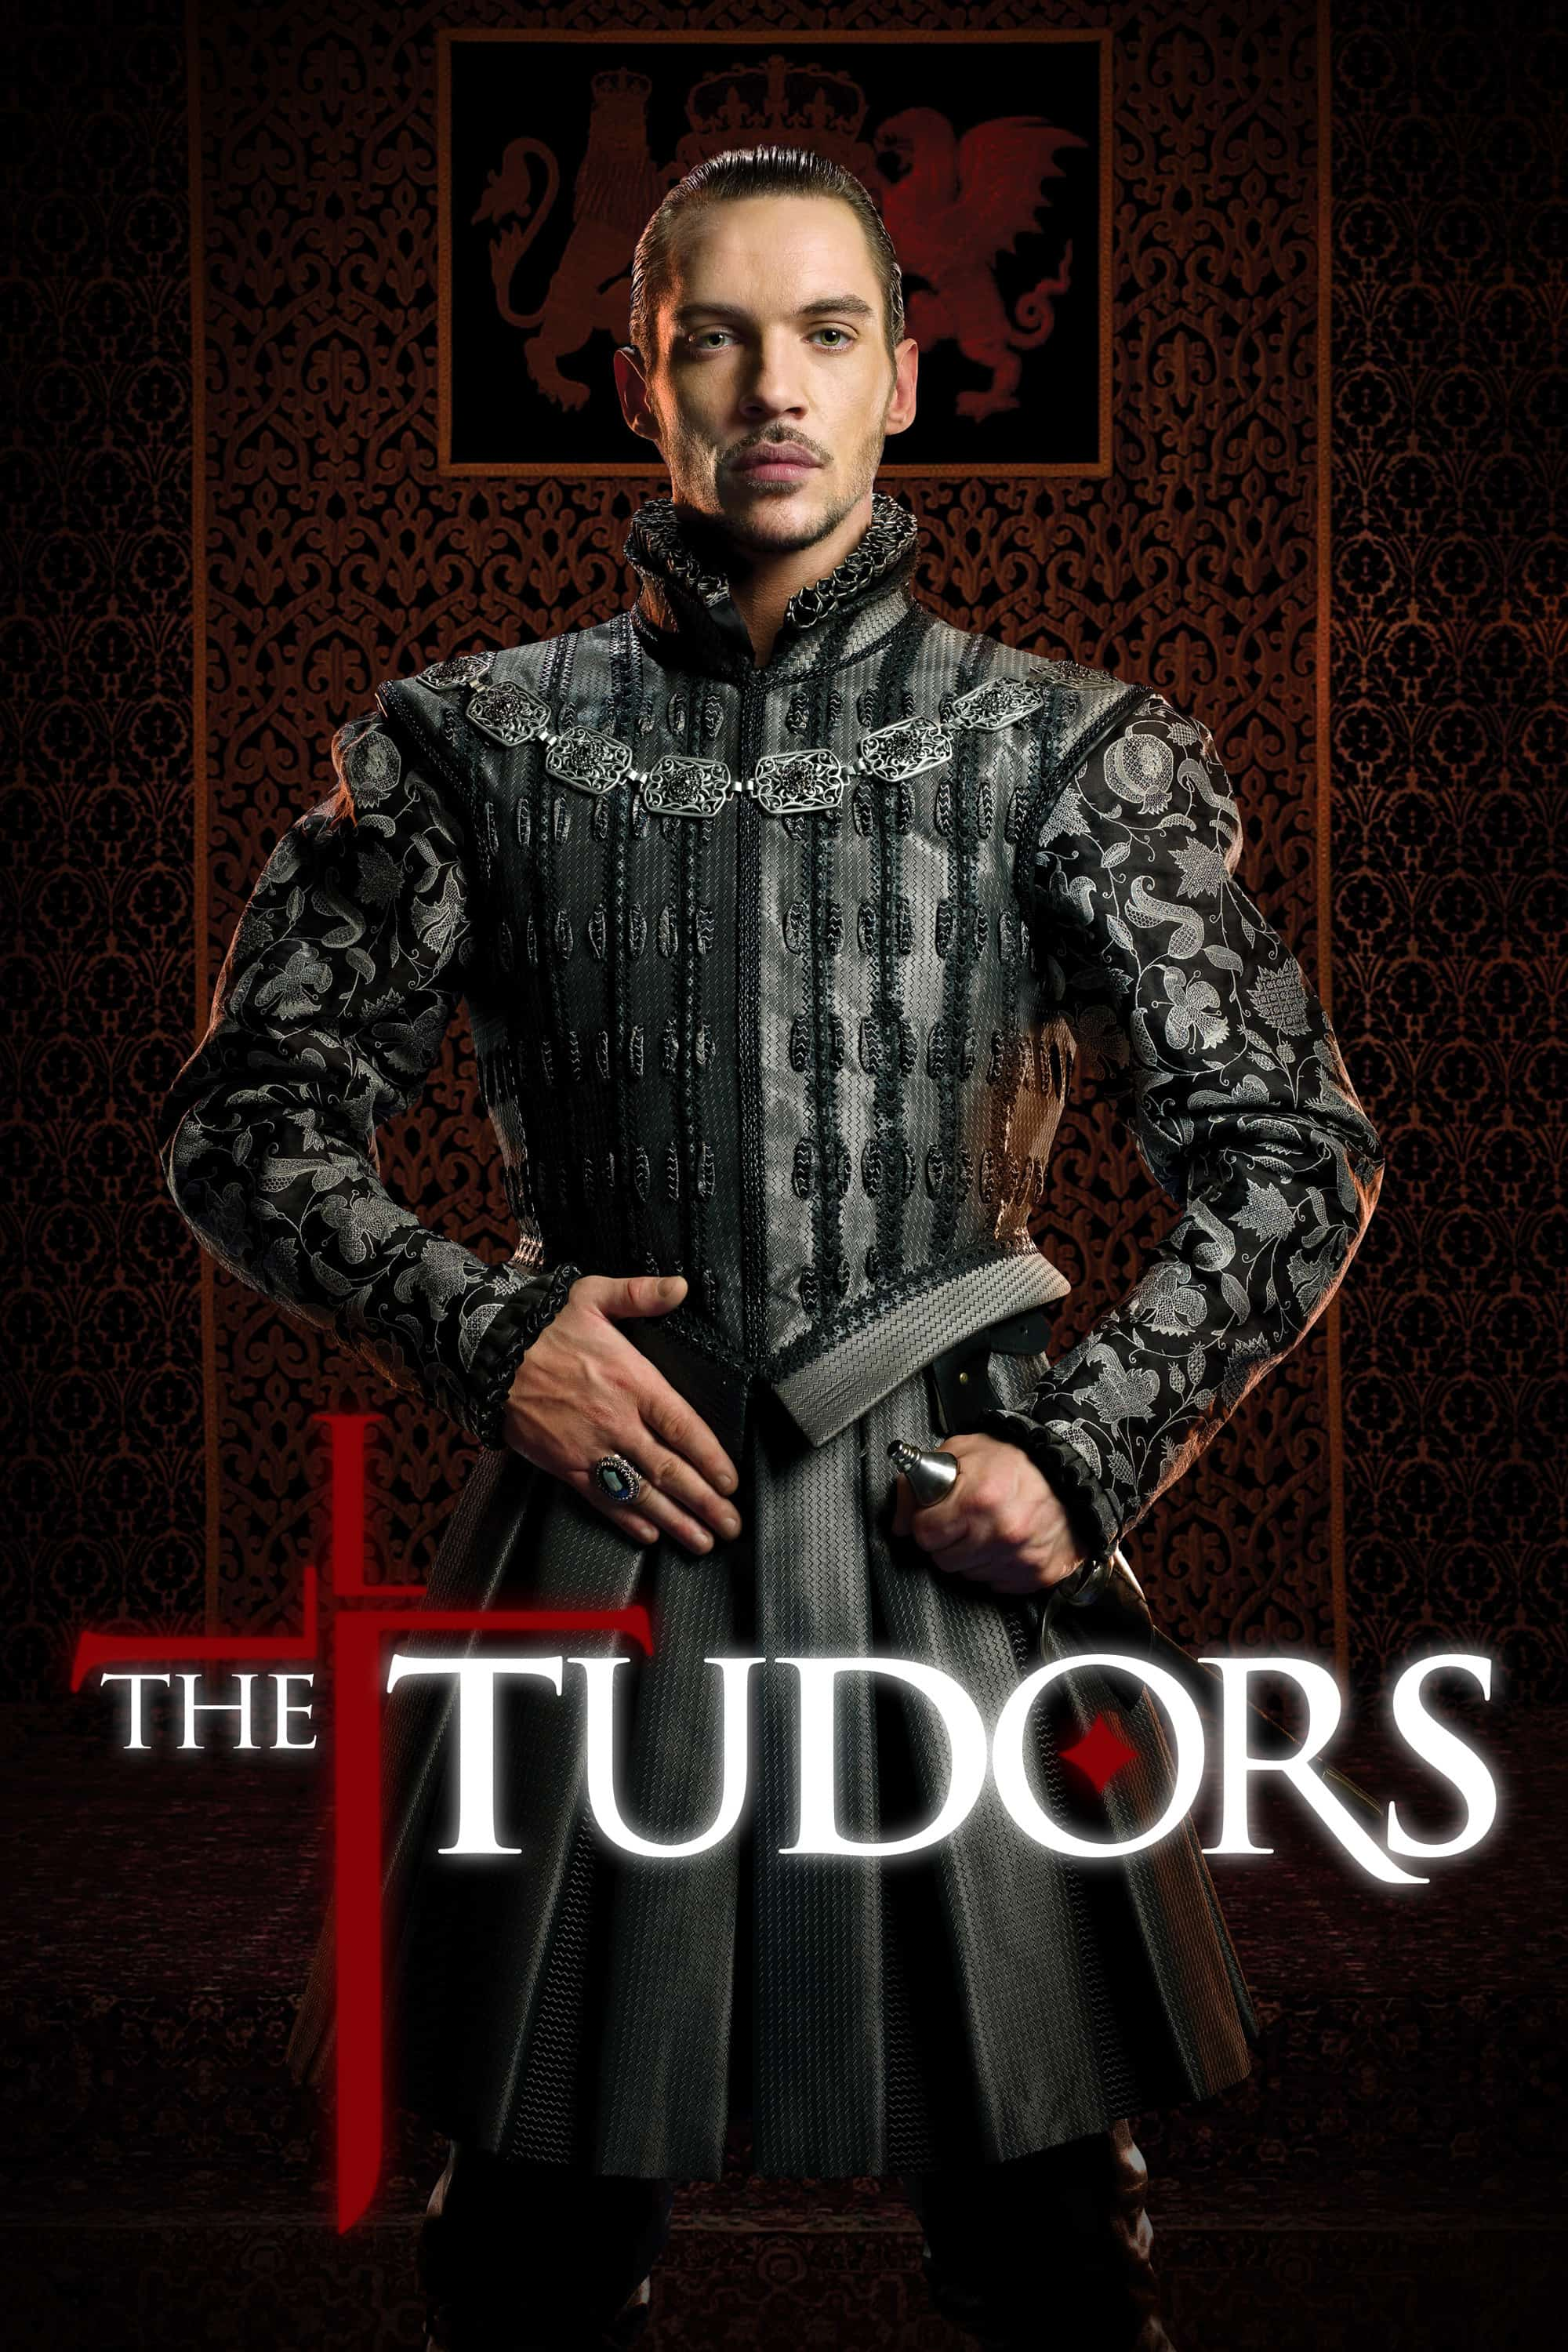 The Tudors, 2007